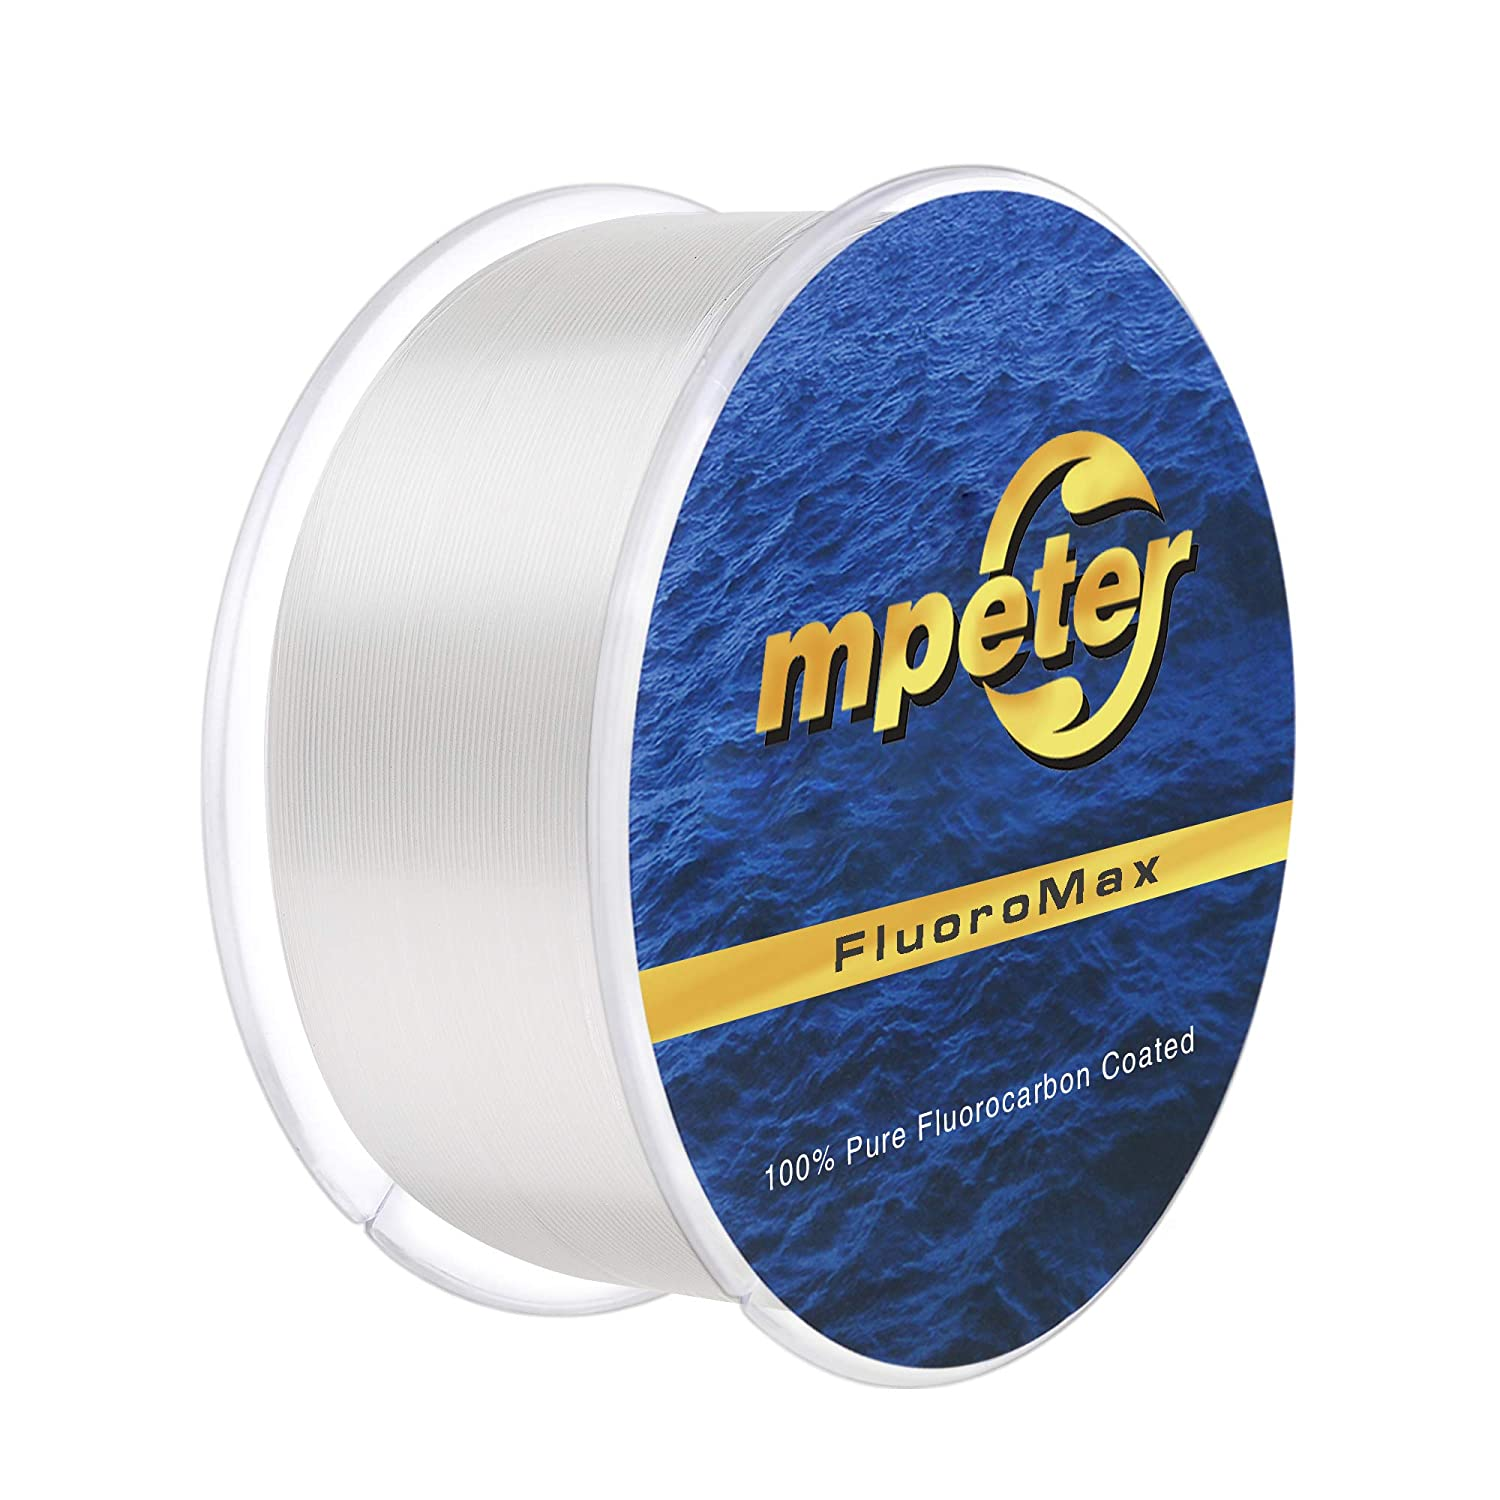 mpeter FluoroMax Fishing line 100/% Pure Fluorocarbon Coated Fishing Line-300Yds//275M High Strength Perfect Substitute Solid Fluorocarbon Line